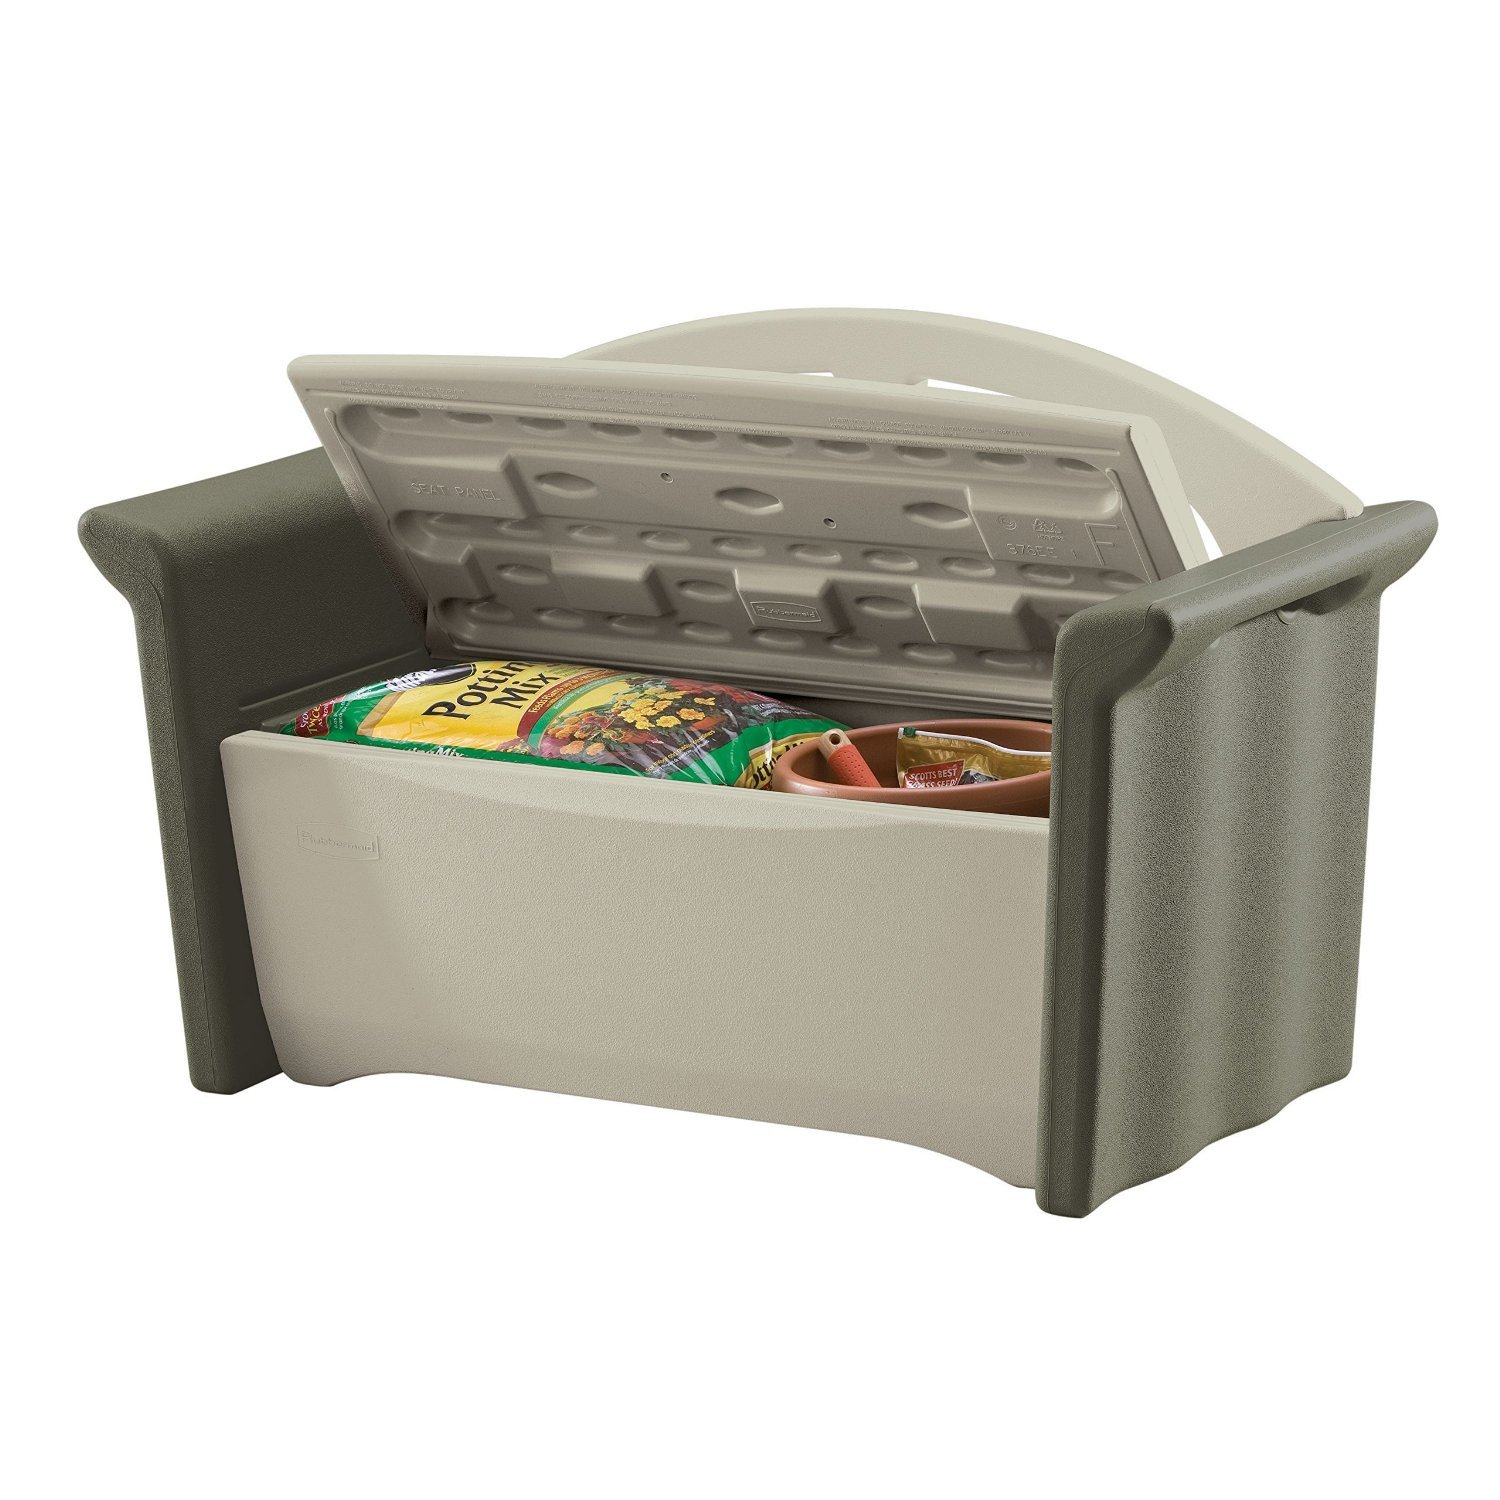 Perfect Amazon.com : Rubbermaid Outdoor Patio Storage Bench, 4 Cu. Ft.,  Olive/Sandstone (FG376401OLVSS) : Deck Boxes : Garden U0026 Outdoor